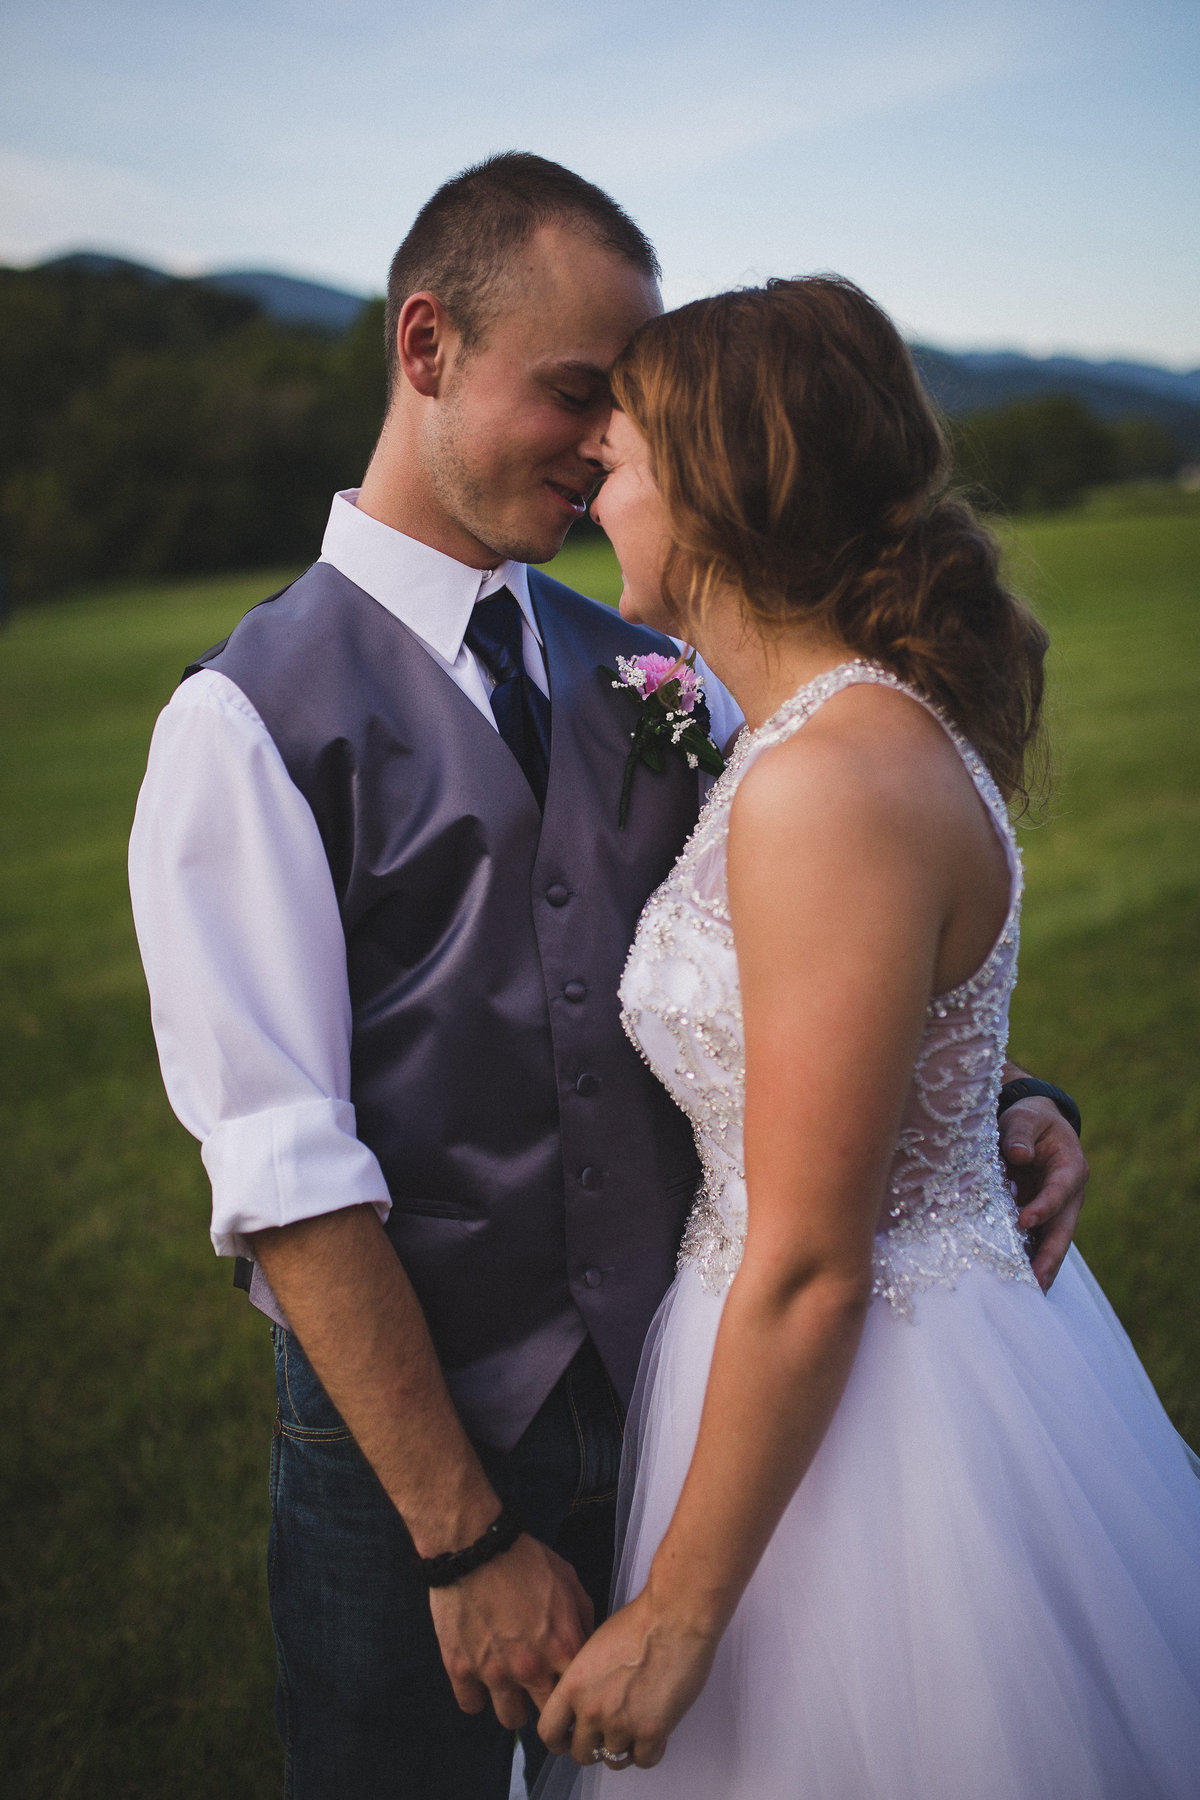 riverside-adventure-wedding-photographer-snuggle